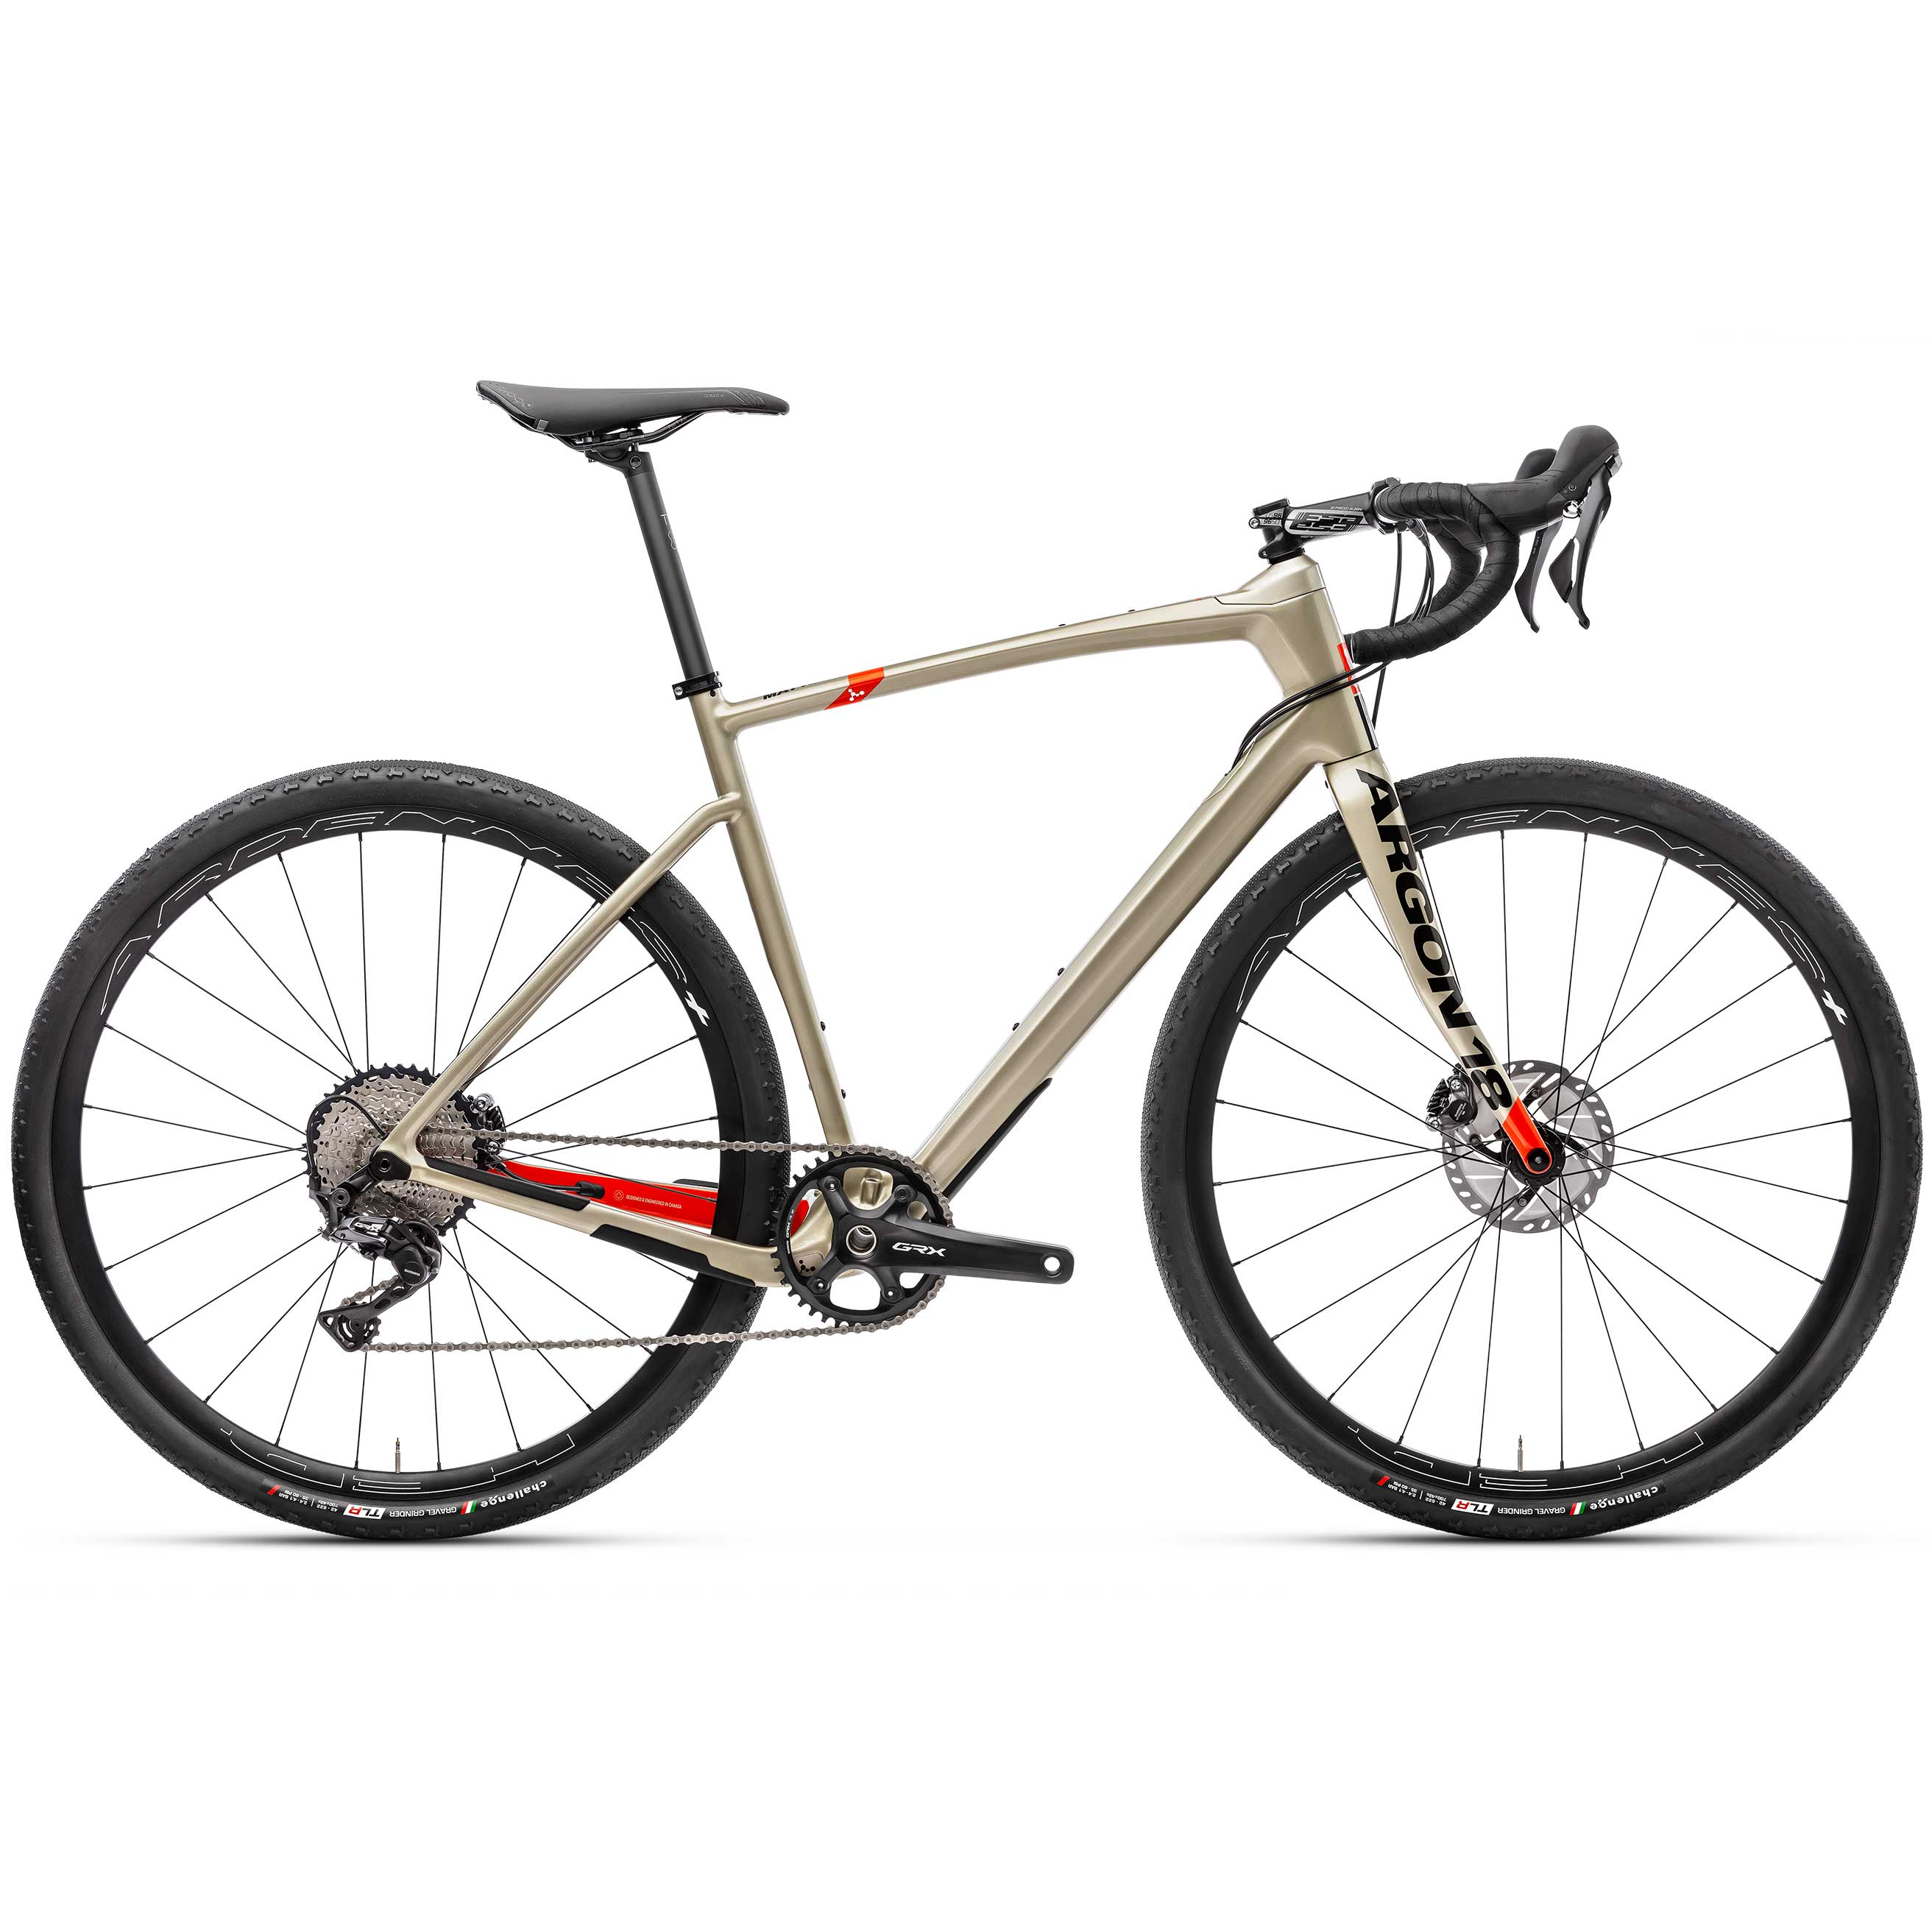 Argon 18 Dark Matter GRX 1x Adventure Bike